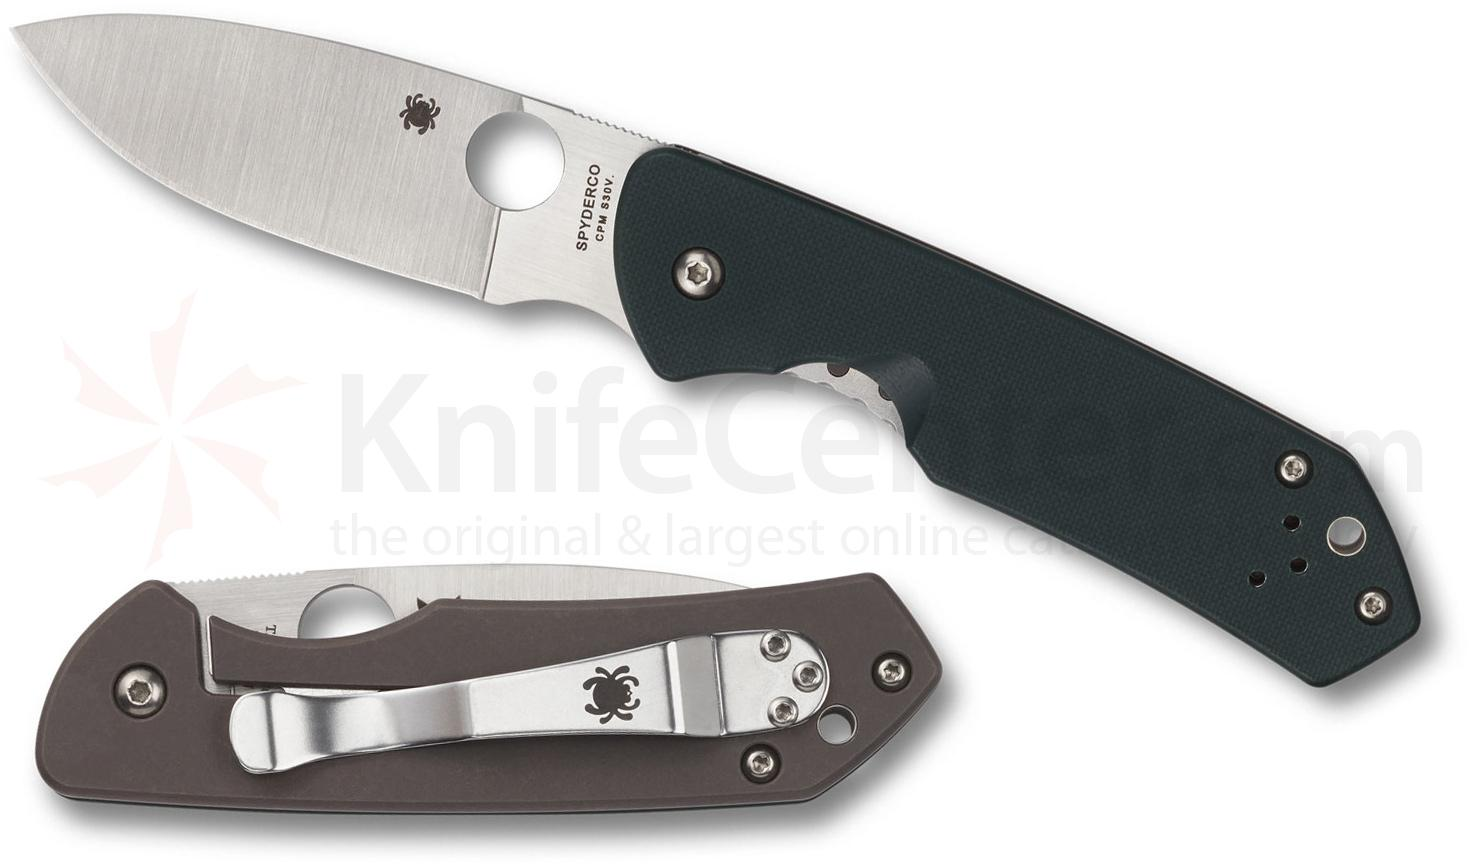 Spyderco Jerry Brouwer Folding Knife 2.77 inch S30V Satin Plain Blade, Forest Green G10 and Titanium Handles